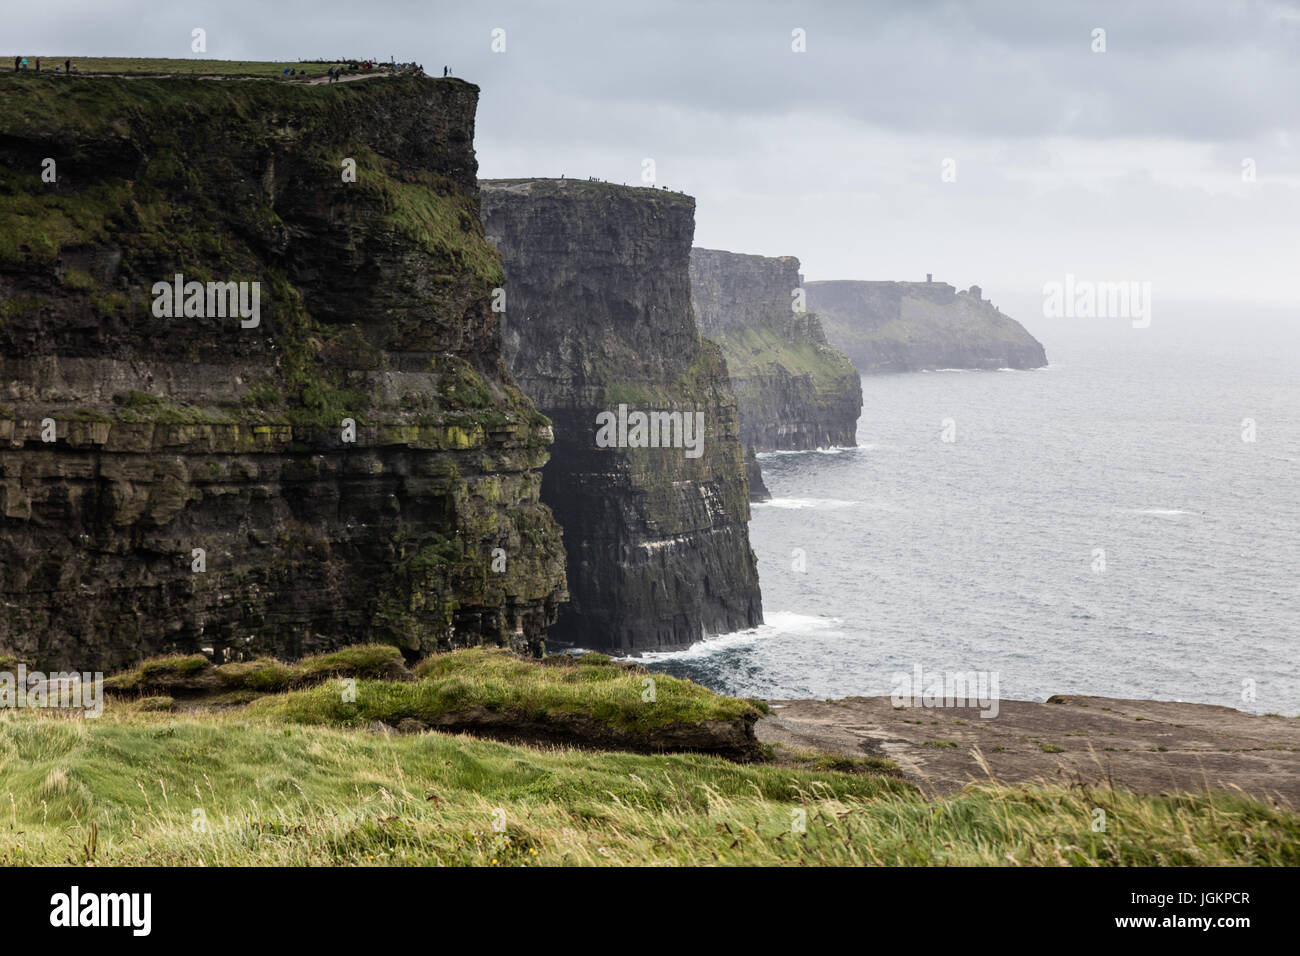 Cliffs of Moher in Ireland in a cloudy day - Stock Image